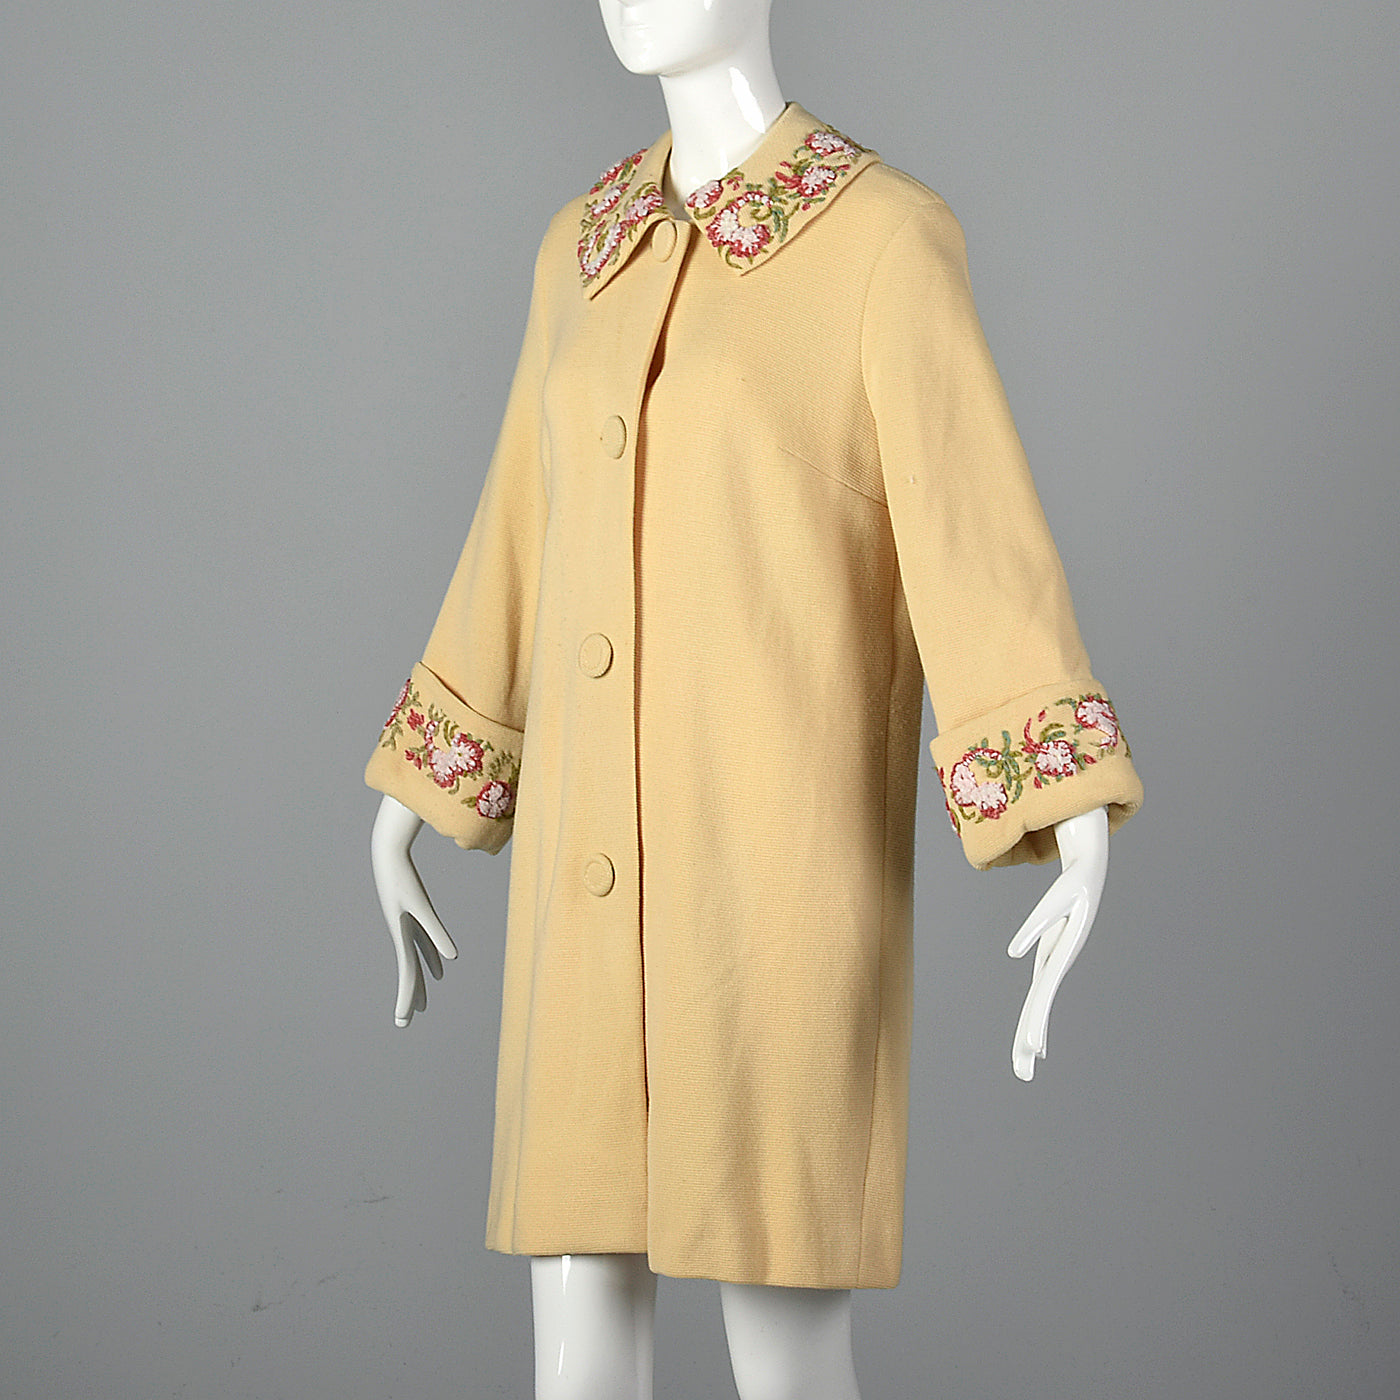 1960s Cream Knit Coat with Floral Embroidery Trim